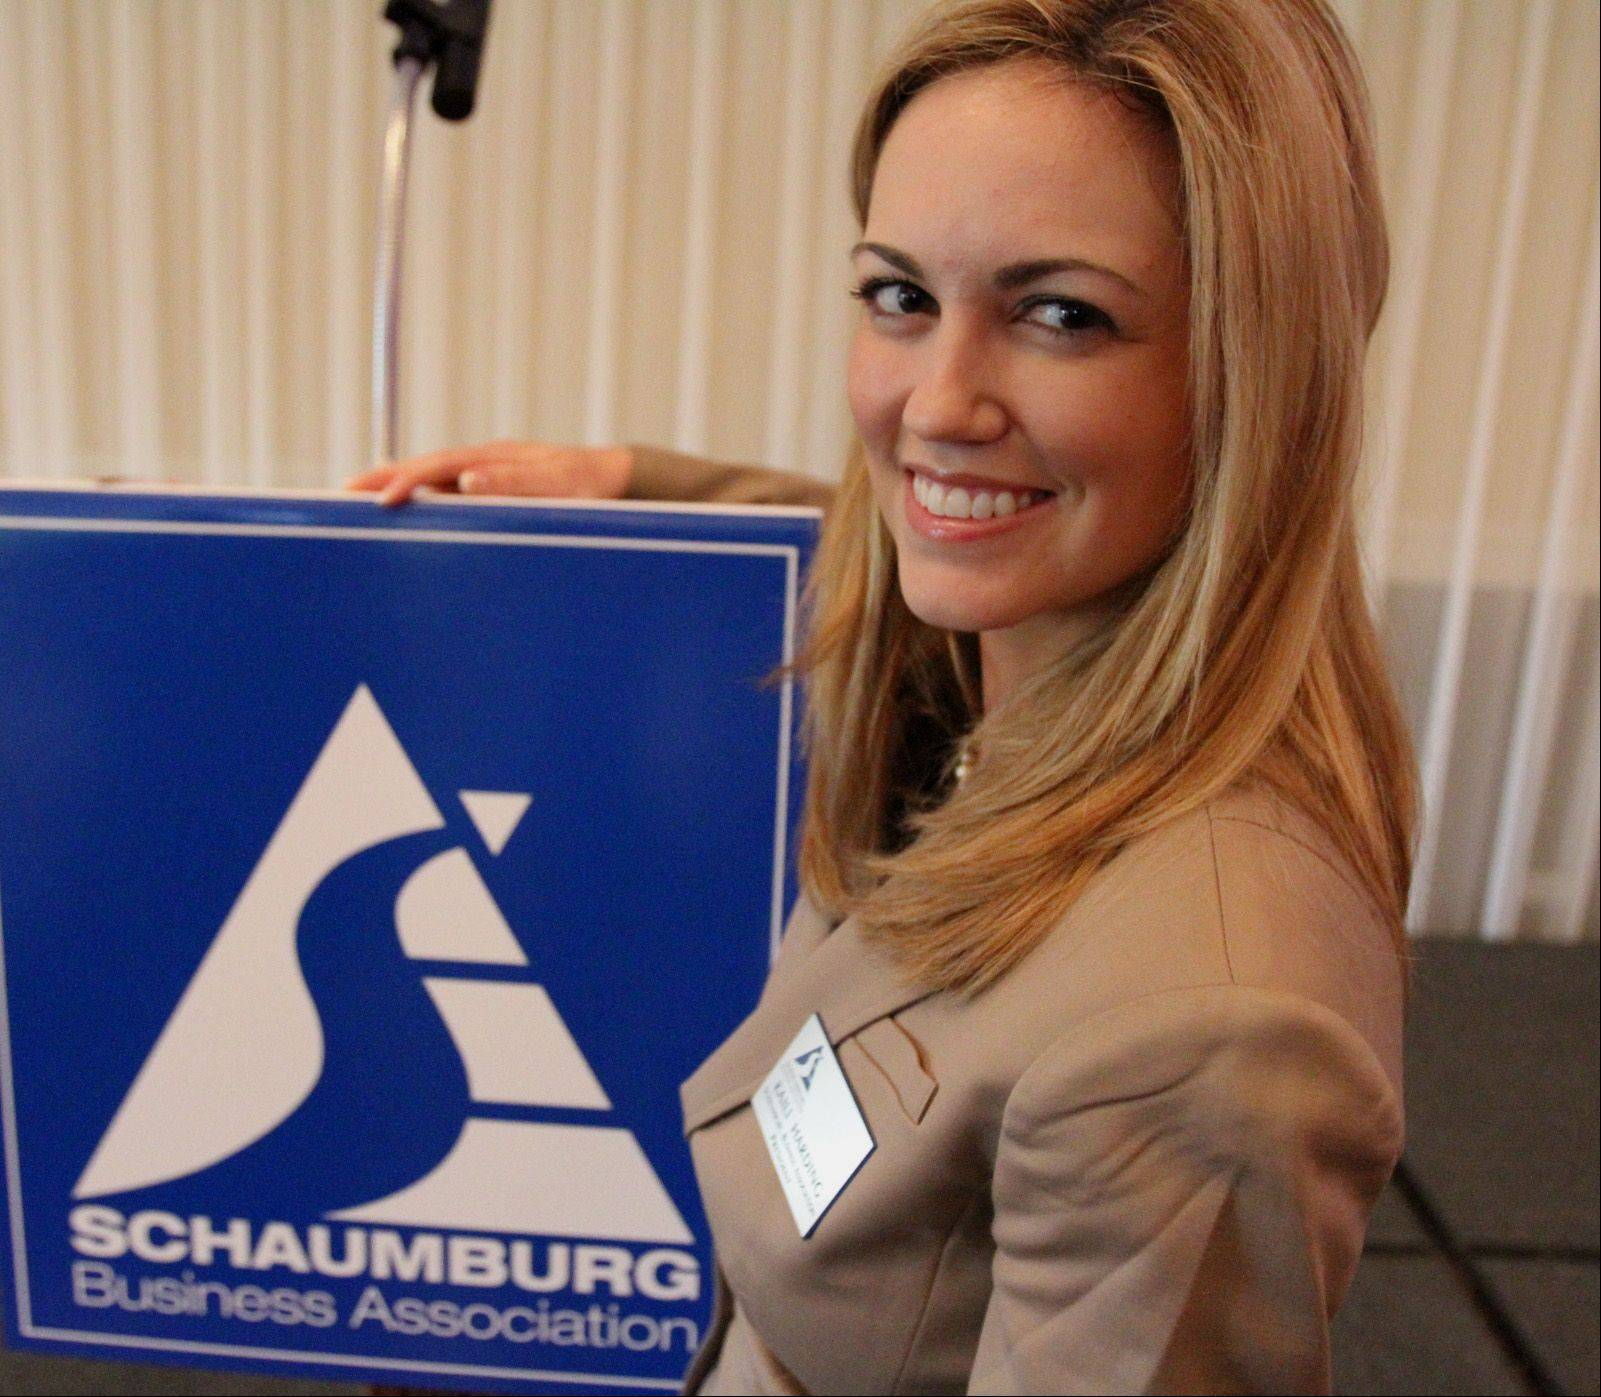 New Schaumburg Business Association President Kaili Harding at the association's monthly Good Morning Schaumburg breakfast. Harding took over as the association's president last month.